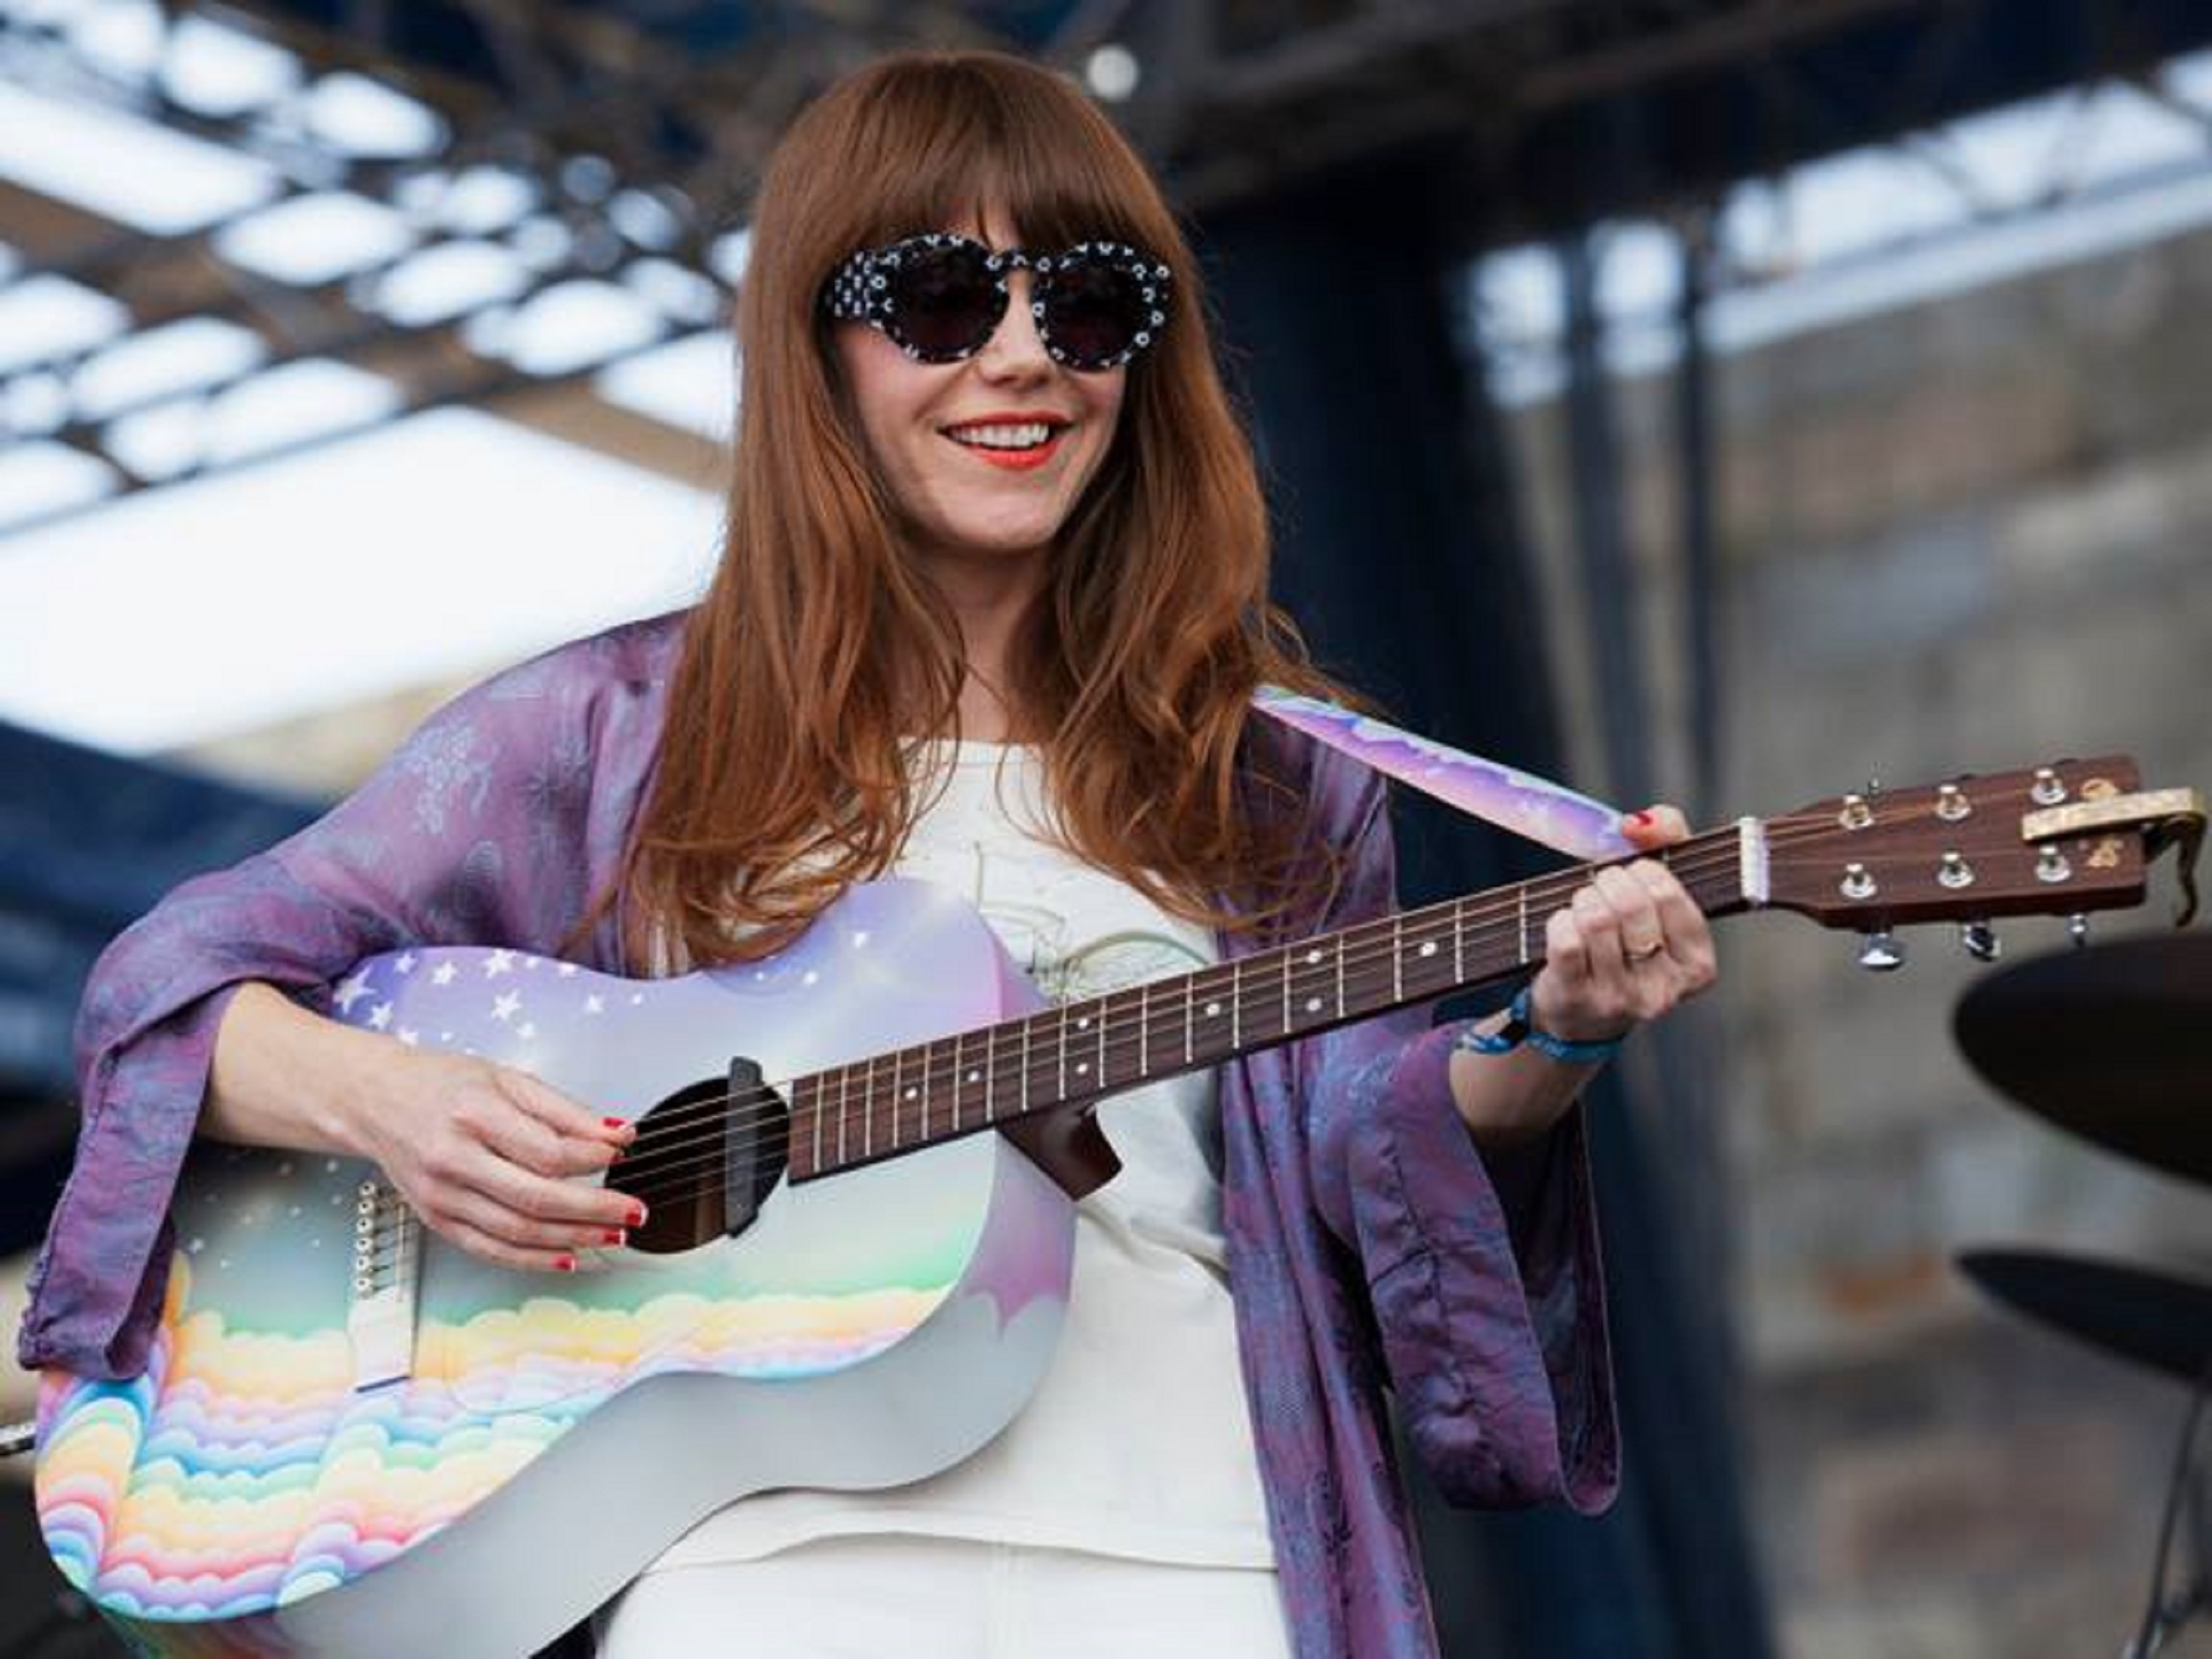 Top 10 Highlights of the 2014 Newport Folk Festival